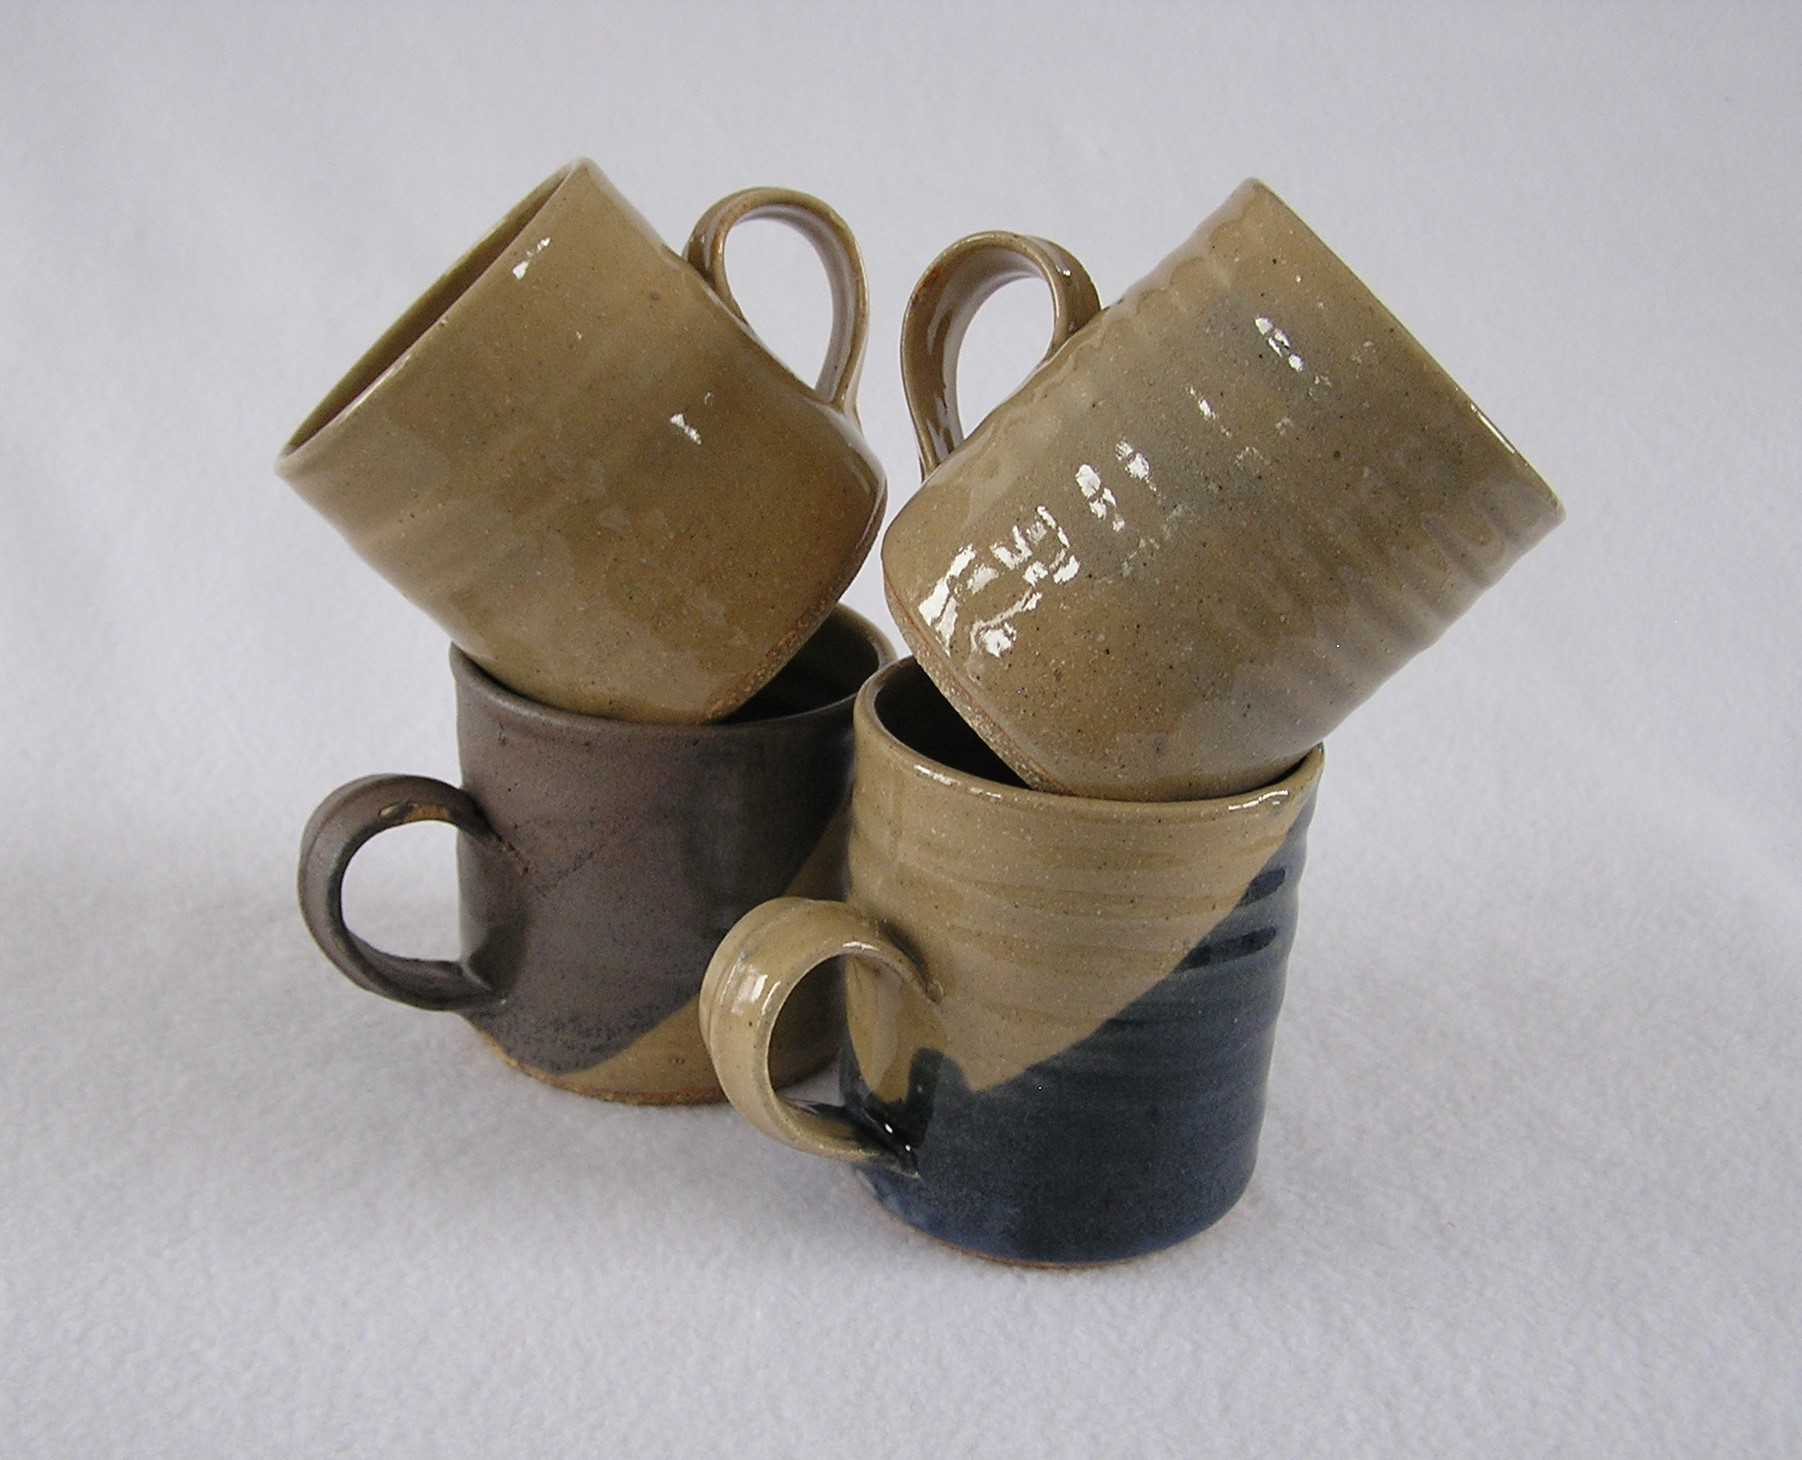 Cup- Coffee, Orphans appx 3